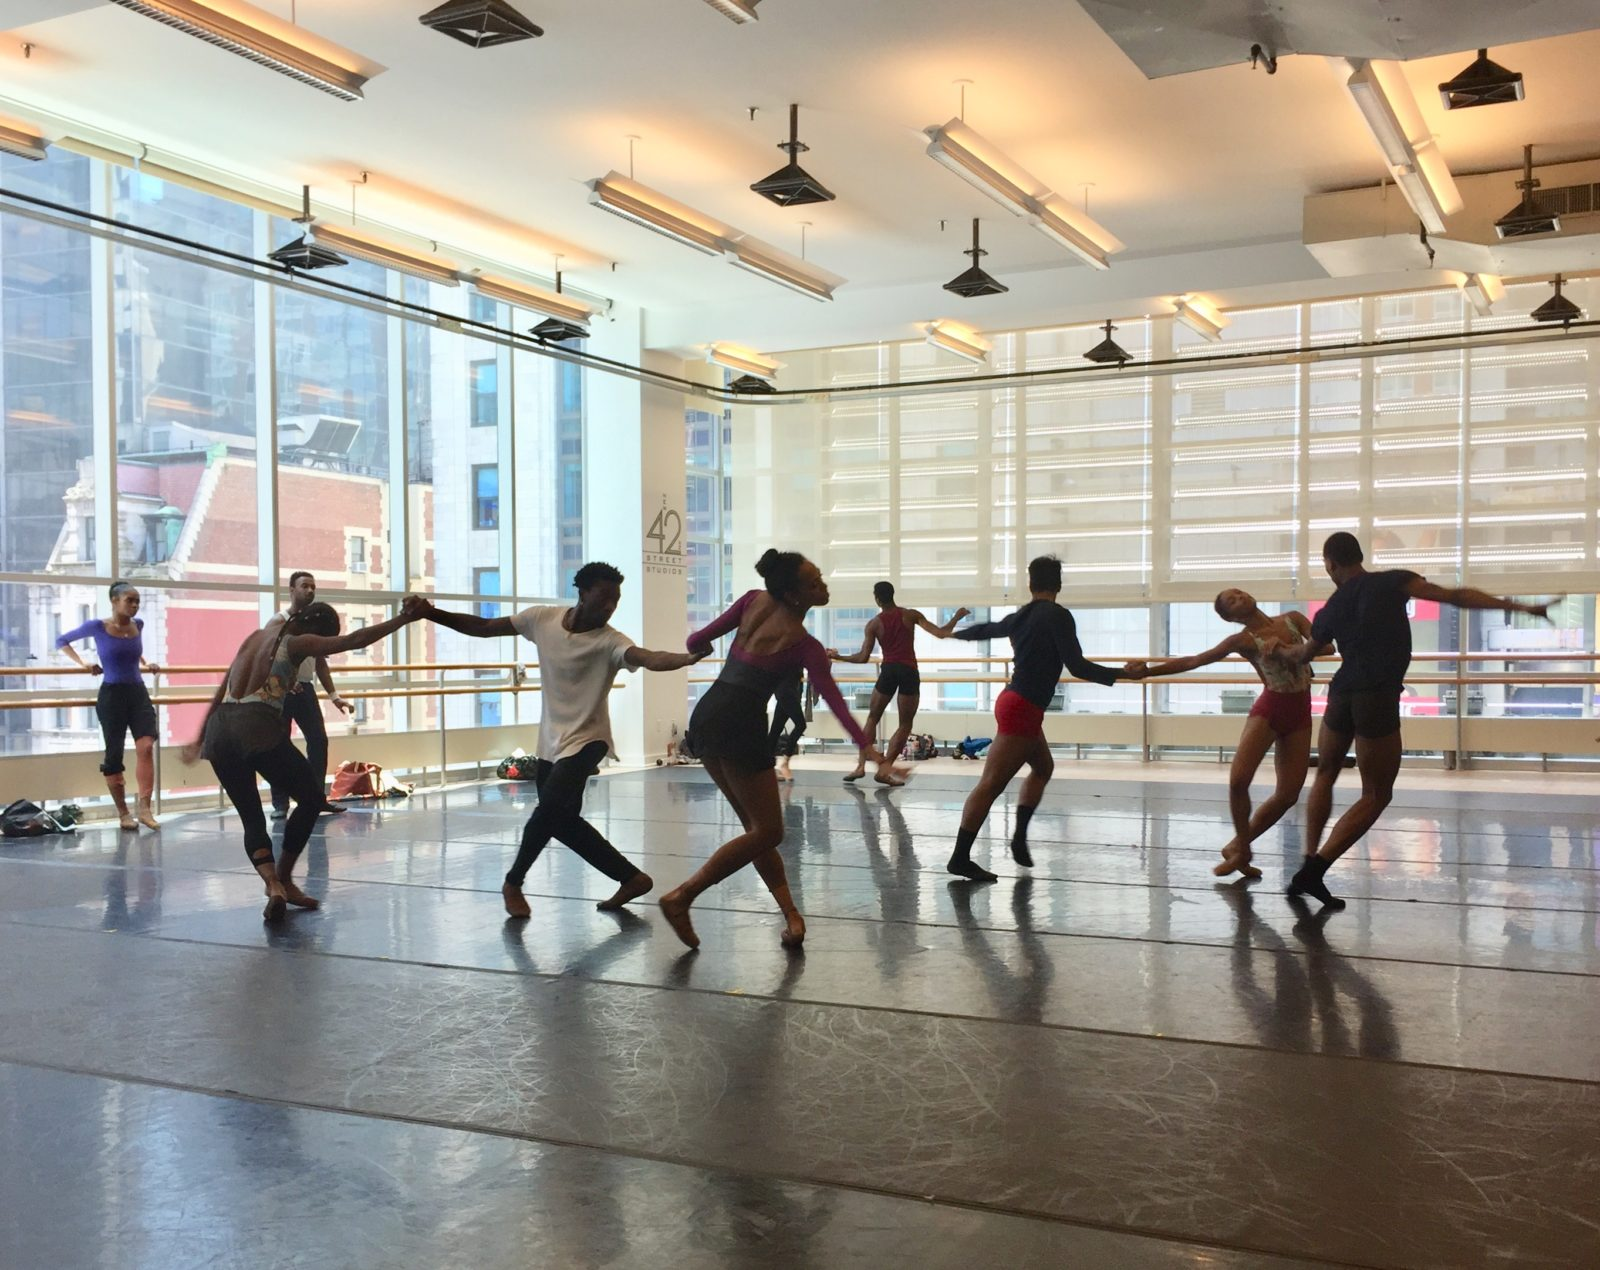 New York Dance Theatre of Harlem